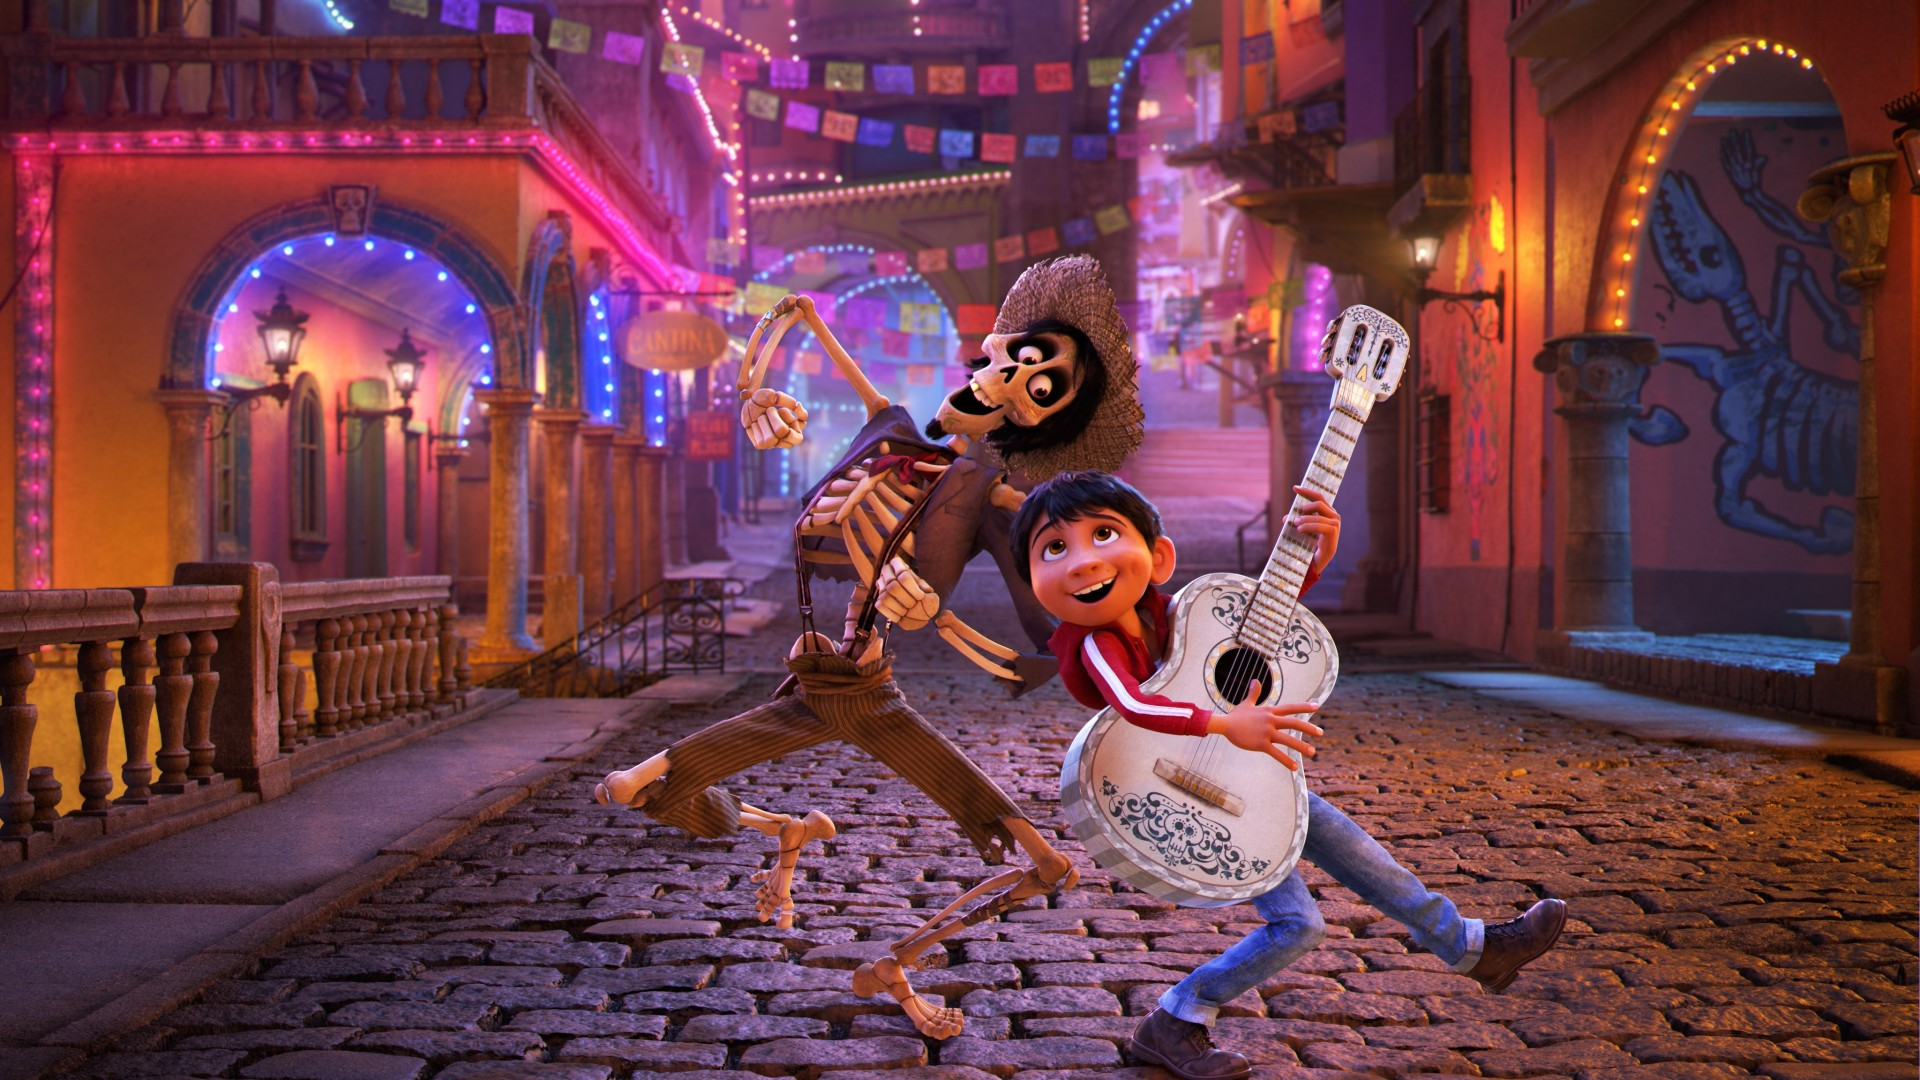 Ultra High Iphone X Wallpapers Coco 2017 Animation 4k Wallpapers Hd Wallpapers Id 20930